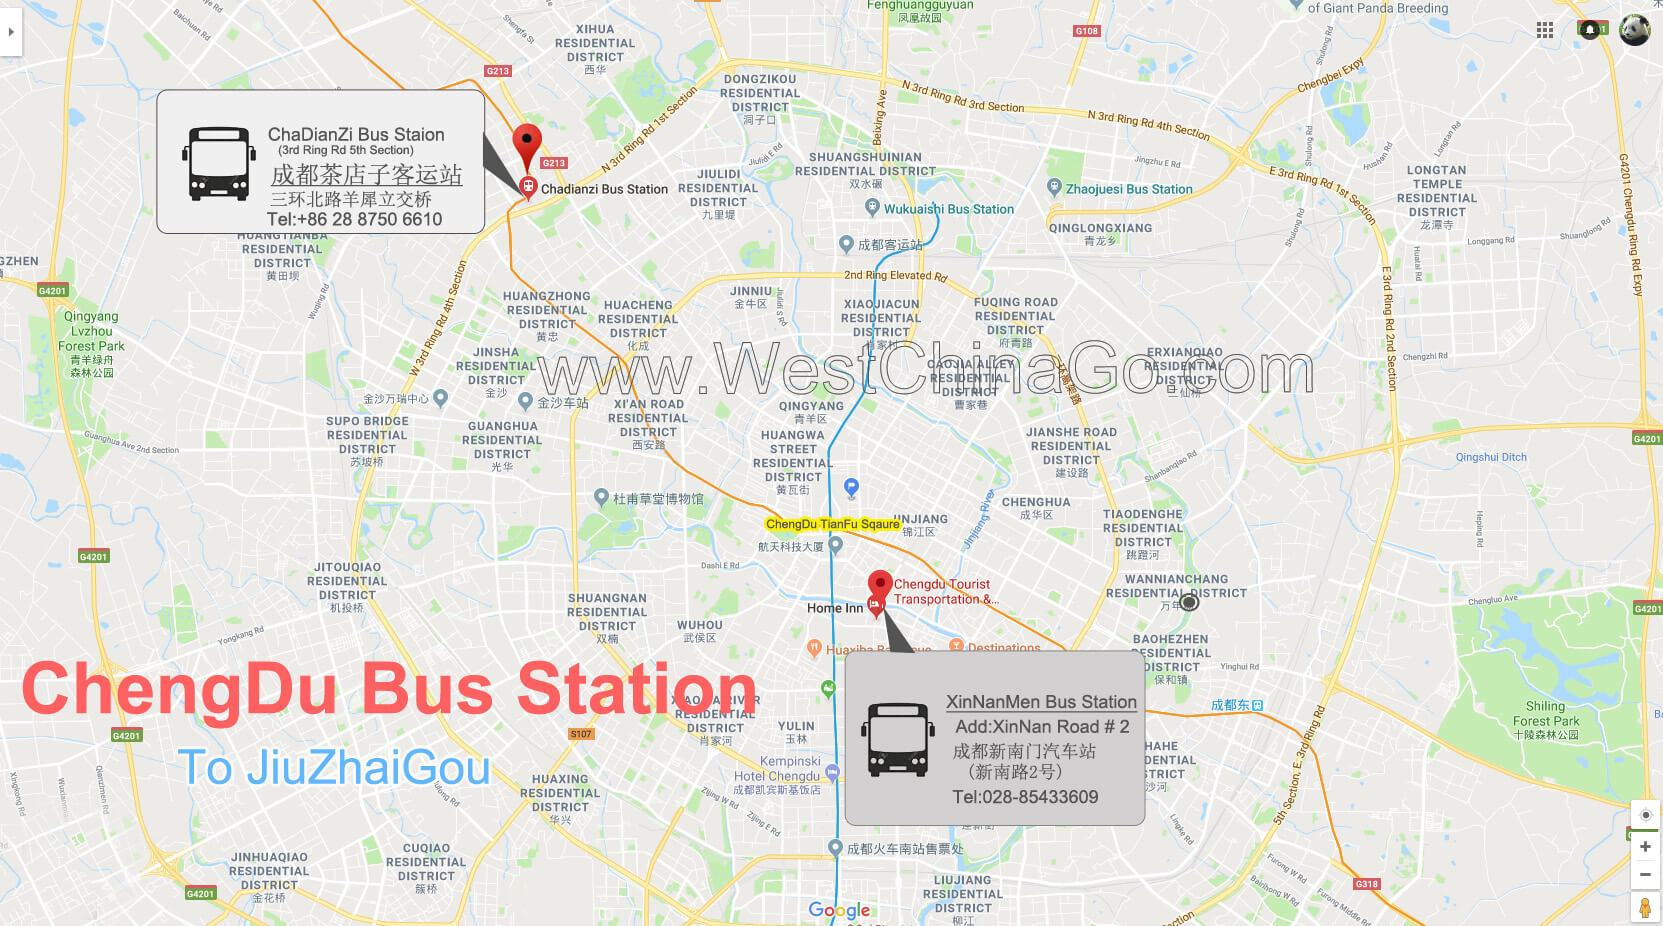 chengdu bus station map